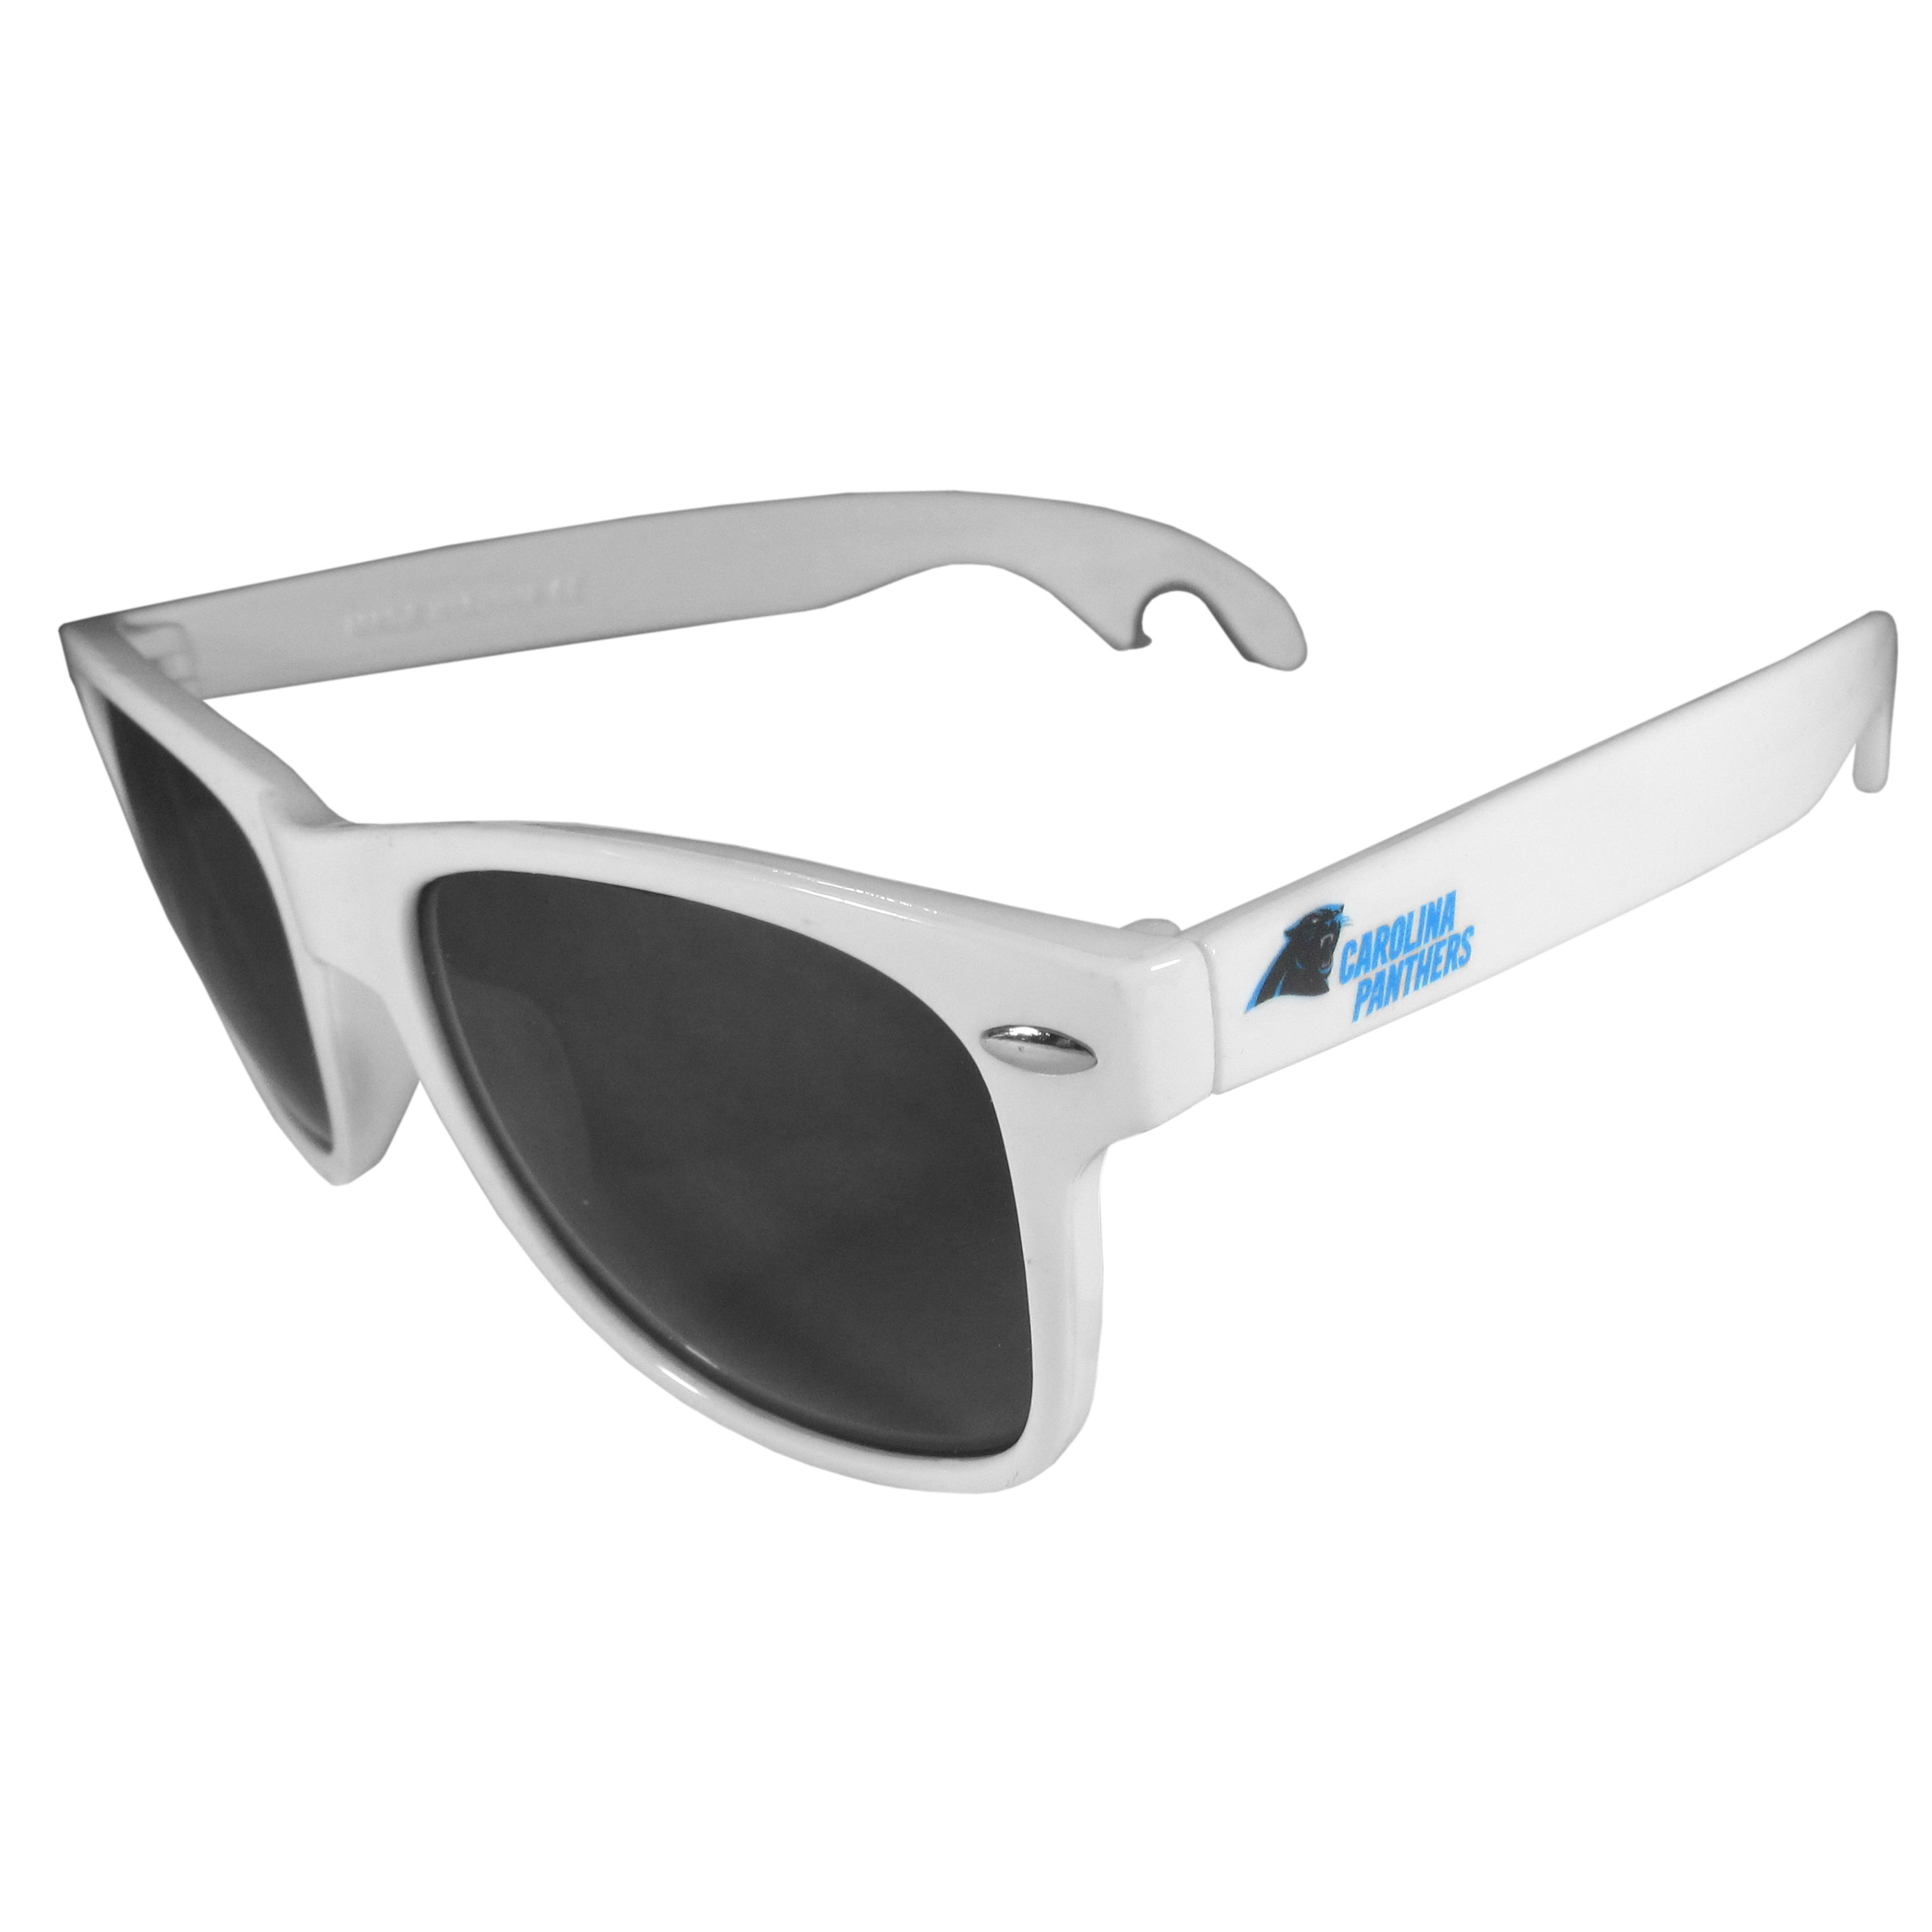 Carolina Panthers Beachfarer Bottle Opener Sunglasses, White - Seriously, these sunglasses open bottles! Keep the party going with these amazing Carolina Panthers bottle opener sunglasses. The stylish retro frames feature team designs on the arms and functional bottle openers on the end of the arms. Whether you are at the beach or having a backyard BBQ on game day, these shades will keep your eyes protected with 100% UVA/UVB protection and keep you hydrated with the handy bottle opener arms.